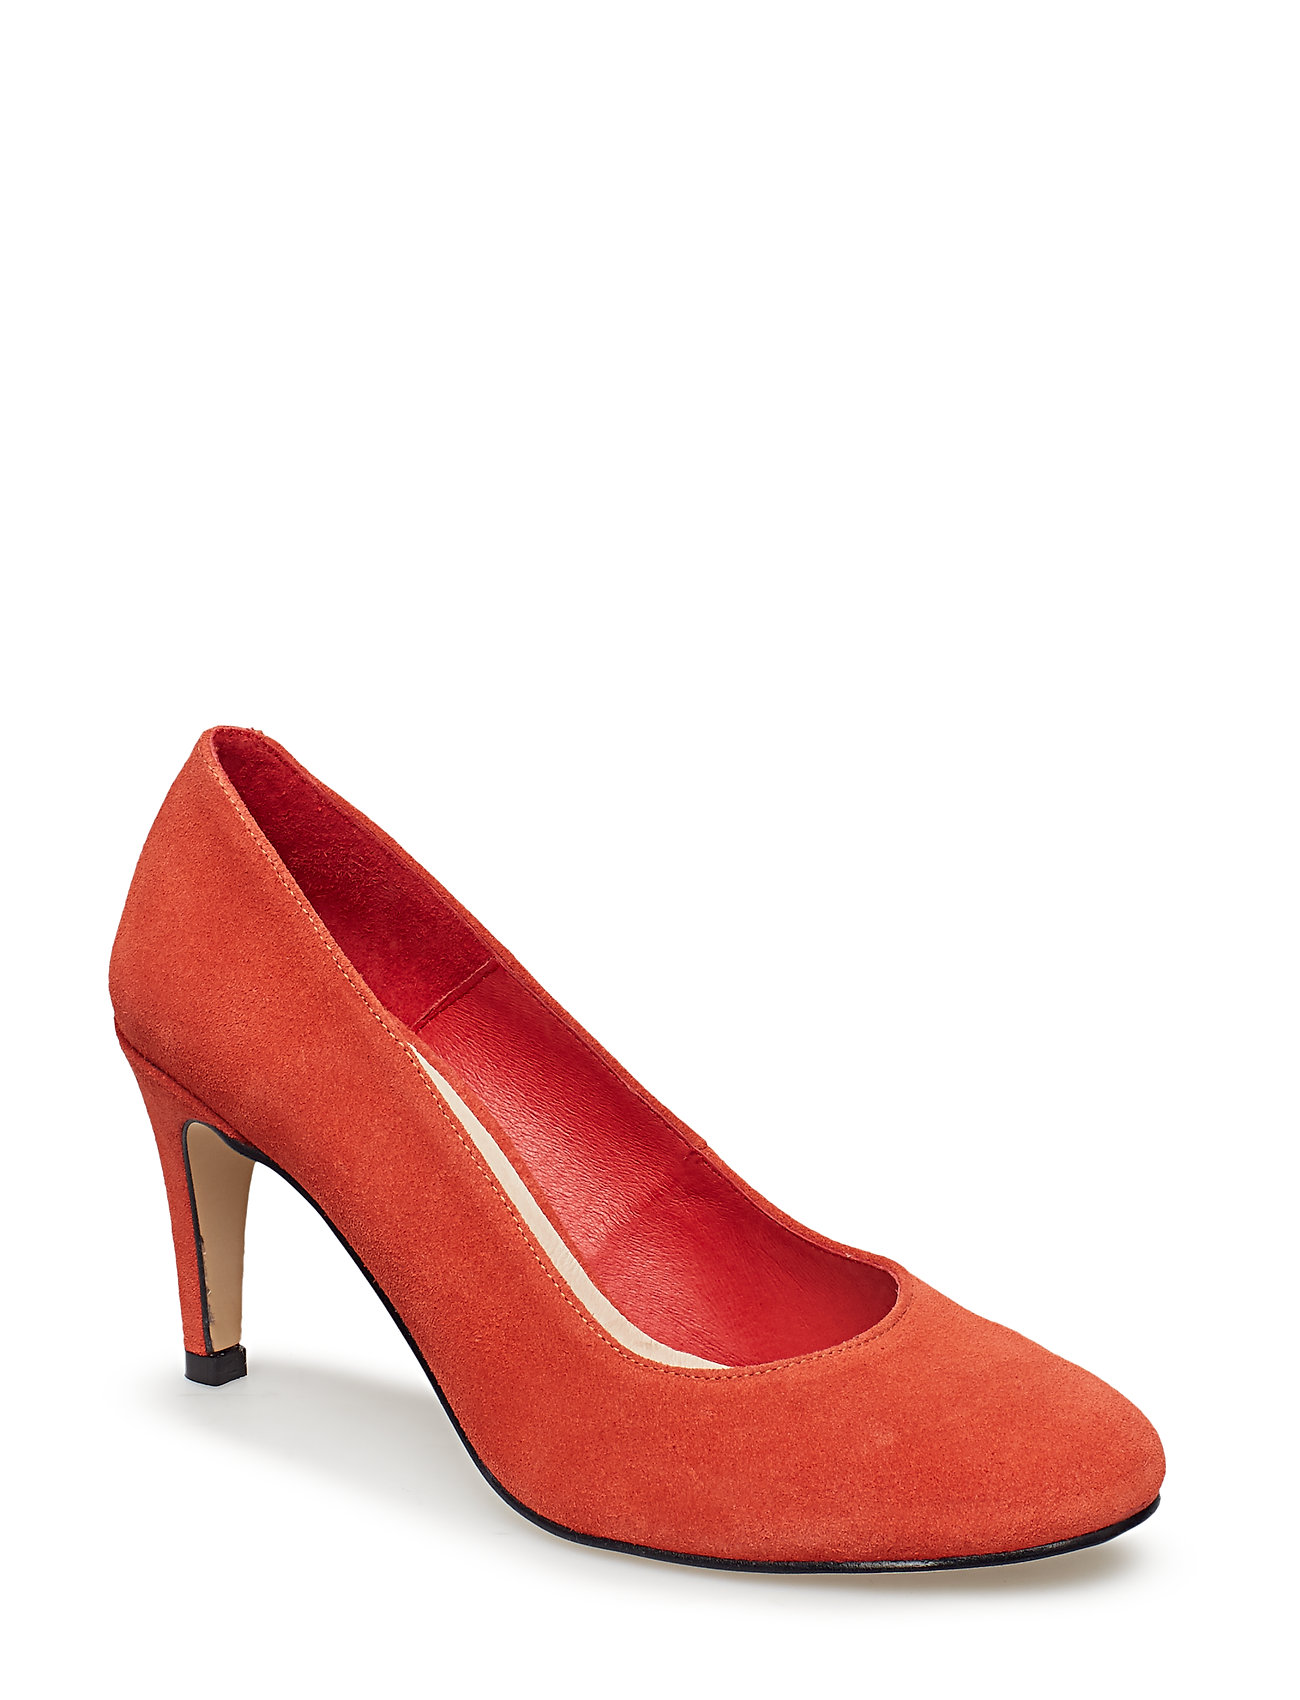 Shoe The Bear DREE S - CORAL RED